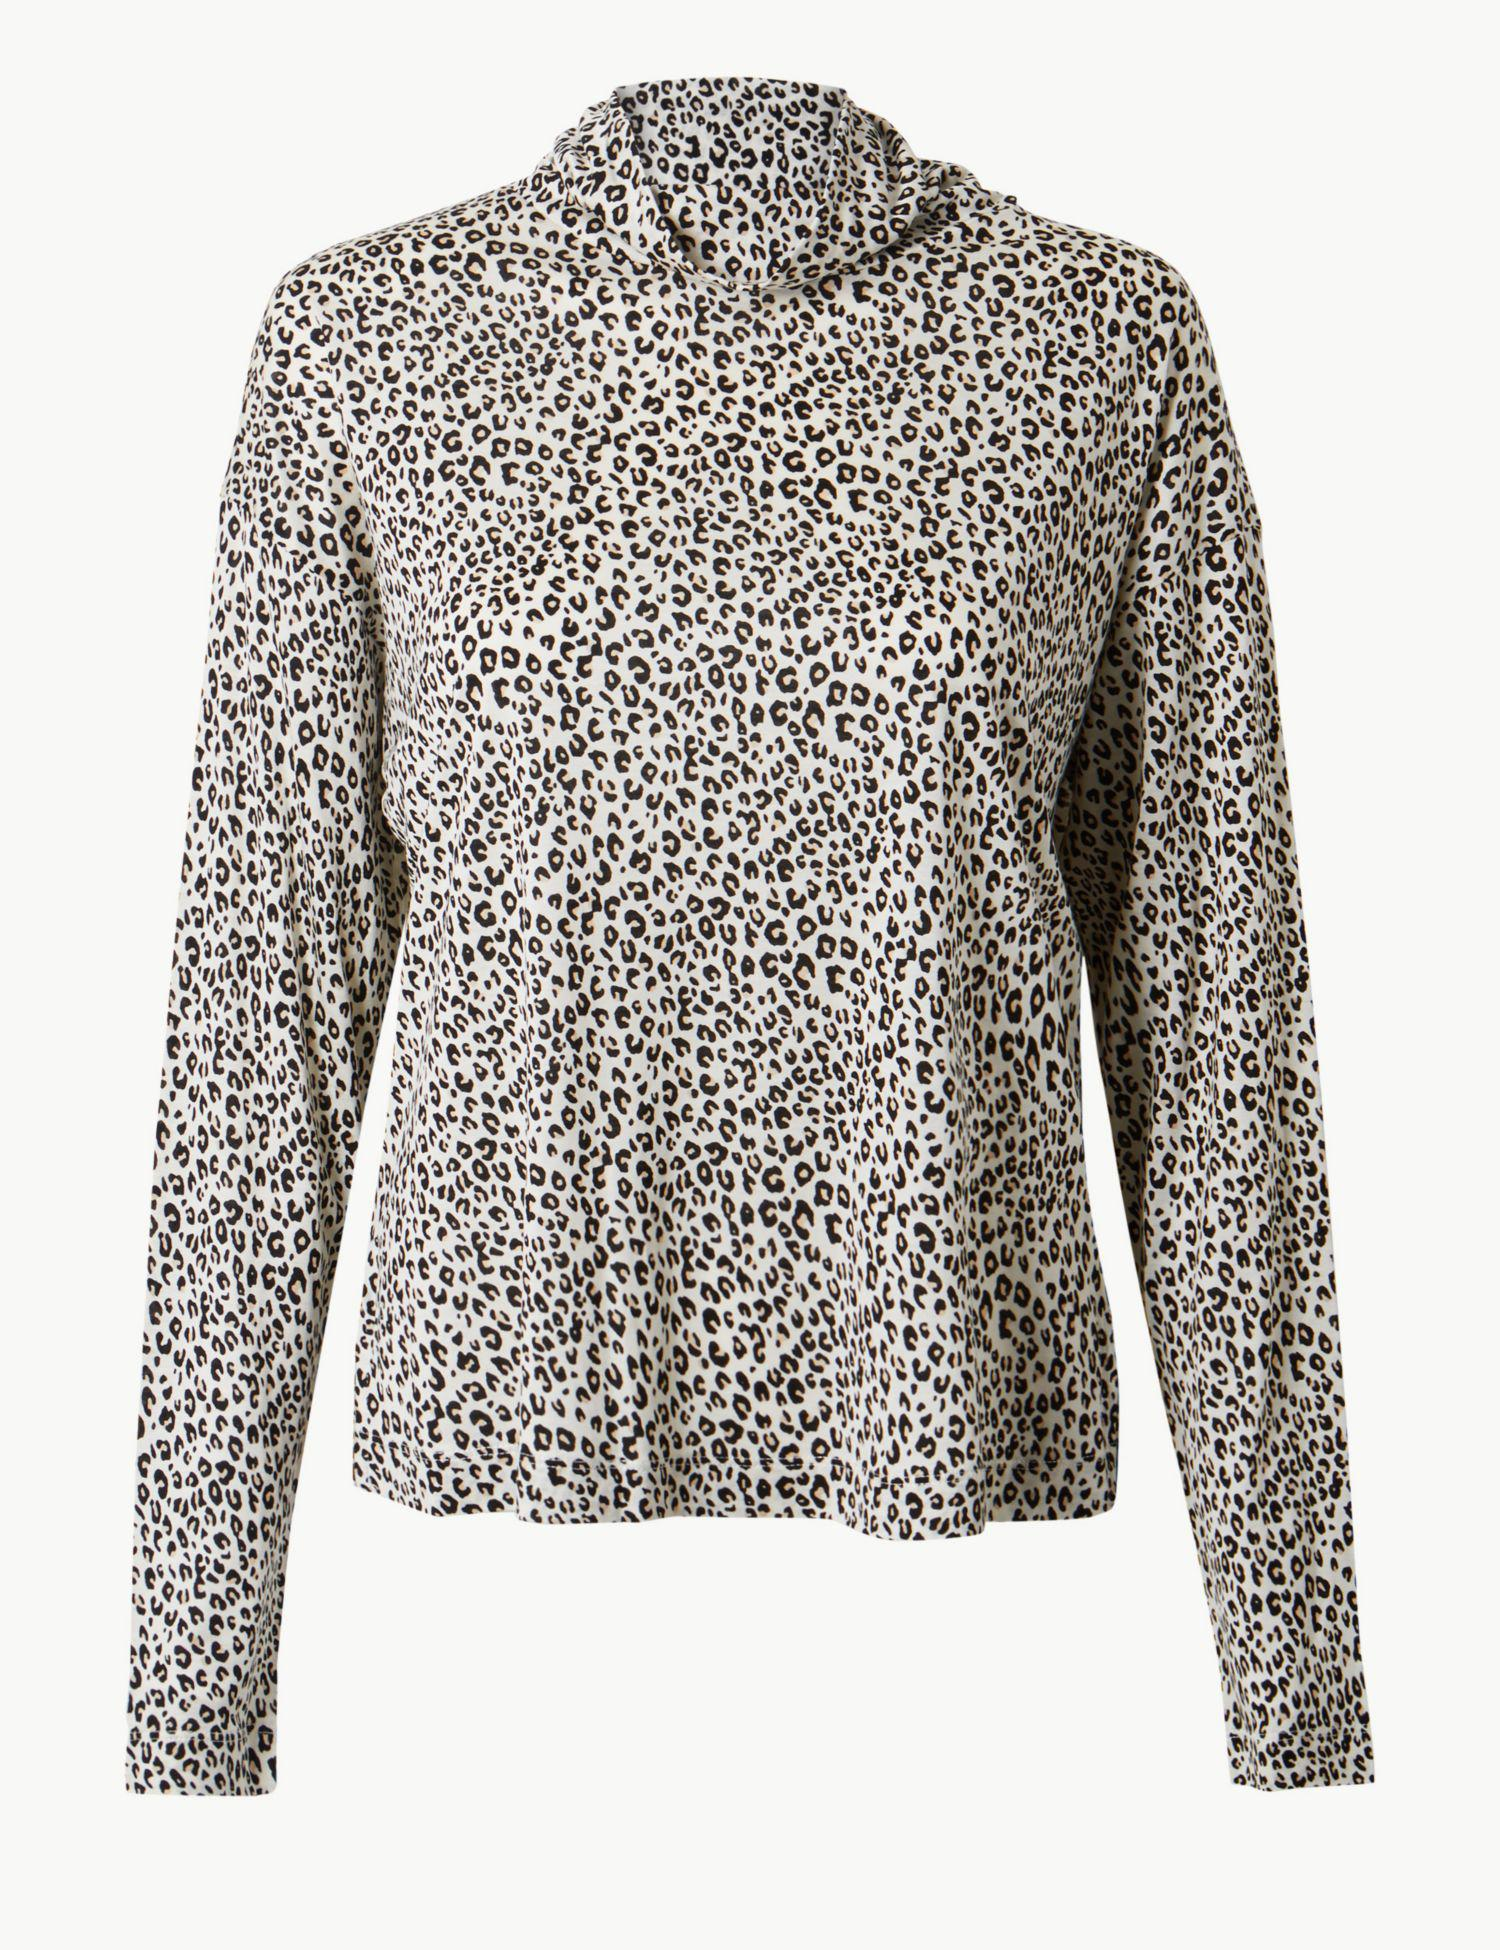 a3290fc6f9fd6a Marks & Spencer. Women's Animal Print Funnel Neck Long Sleeve Top